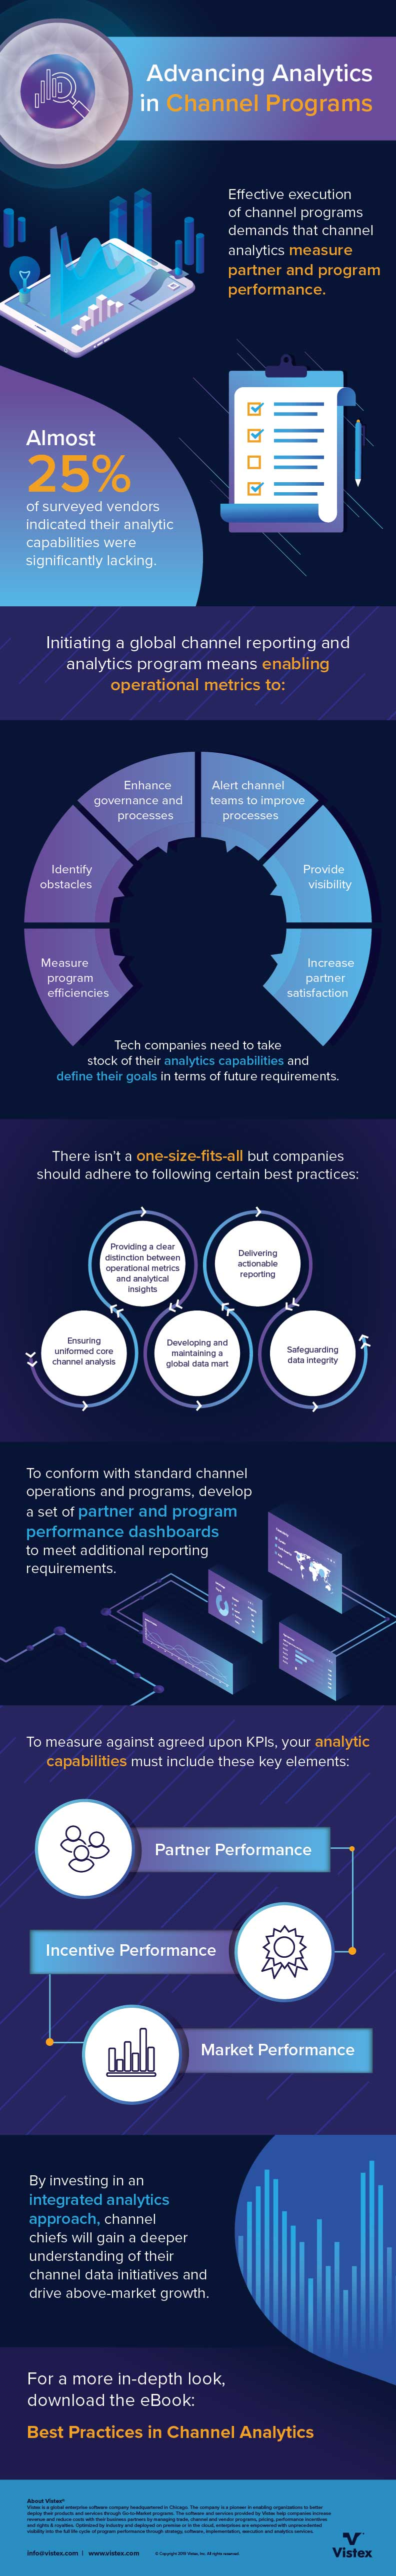 Advancing Analytics in Channel Programs Infographic